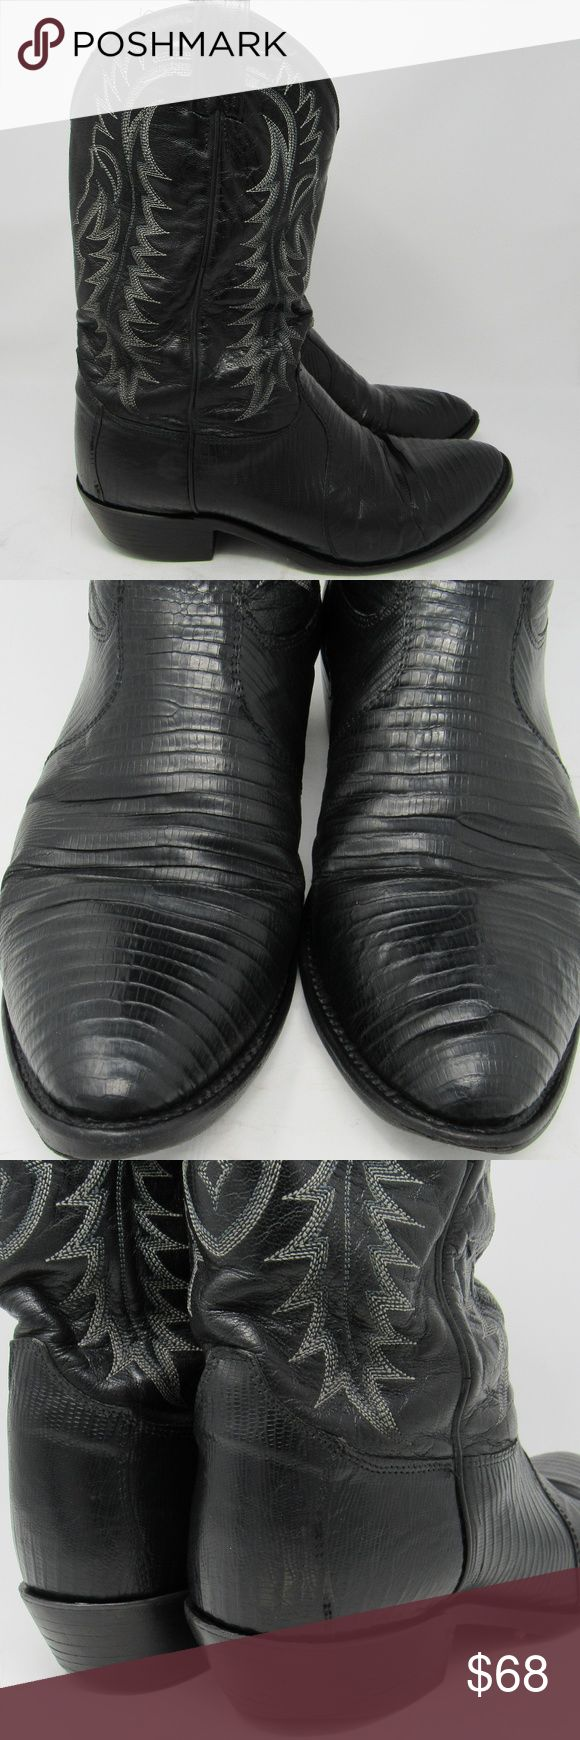 Tony Lama snakeskin cowboy boots men 10 1/2EE Made in the USA Tony Lama Y2061. Black, traditional snakeskin cowboy boots. The snakeskin is in good shape but note some creasing to the foot and shaft. Also note the replacement Soletech half sole and the wear to the heels. They're solid but wearing down. I've featured that in the pictures. Please give them a good look to be comfortable with color and condition.  180150 Tony Lama Shoes Cowboy & Western Boots